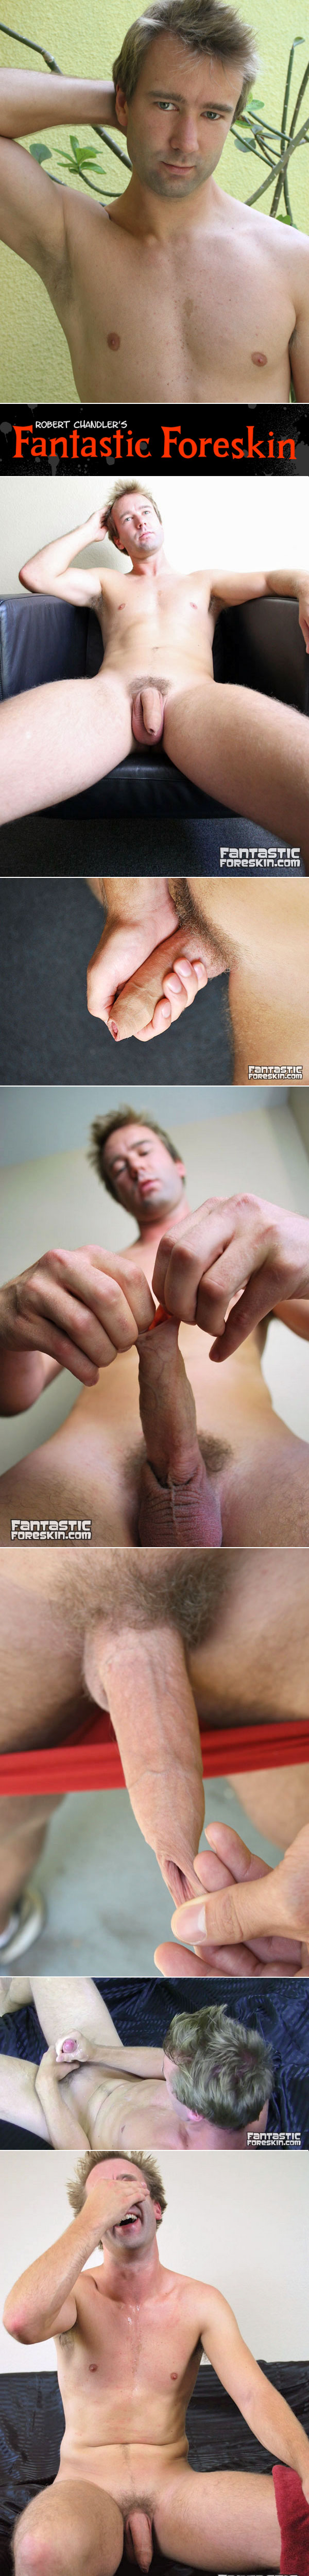 James Jefferson shows some foreskin